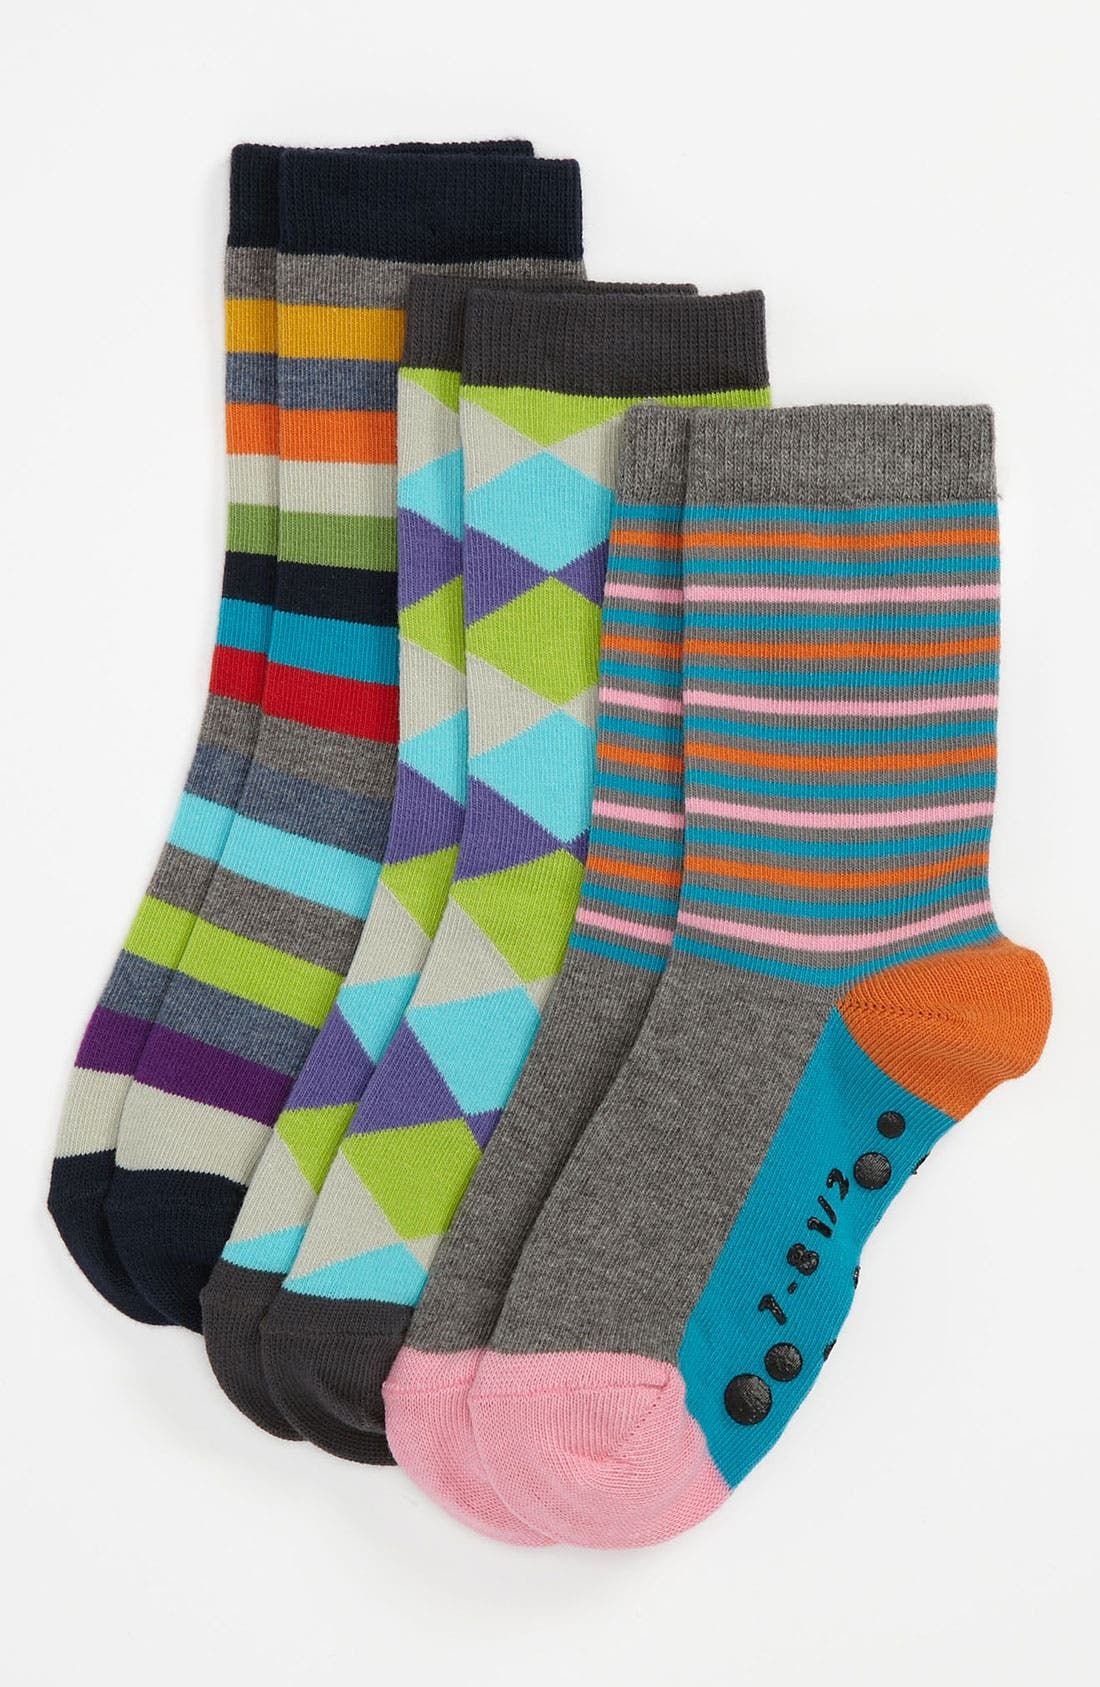 Alternate Image 1 Selected - Nordstrom 'Get Happy' Crew Socks (3-Pack) (Kids)